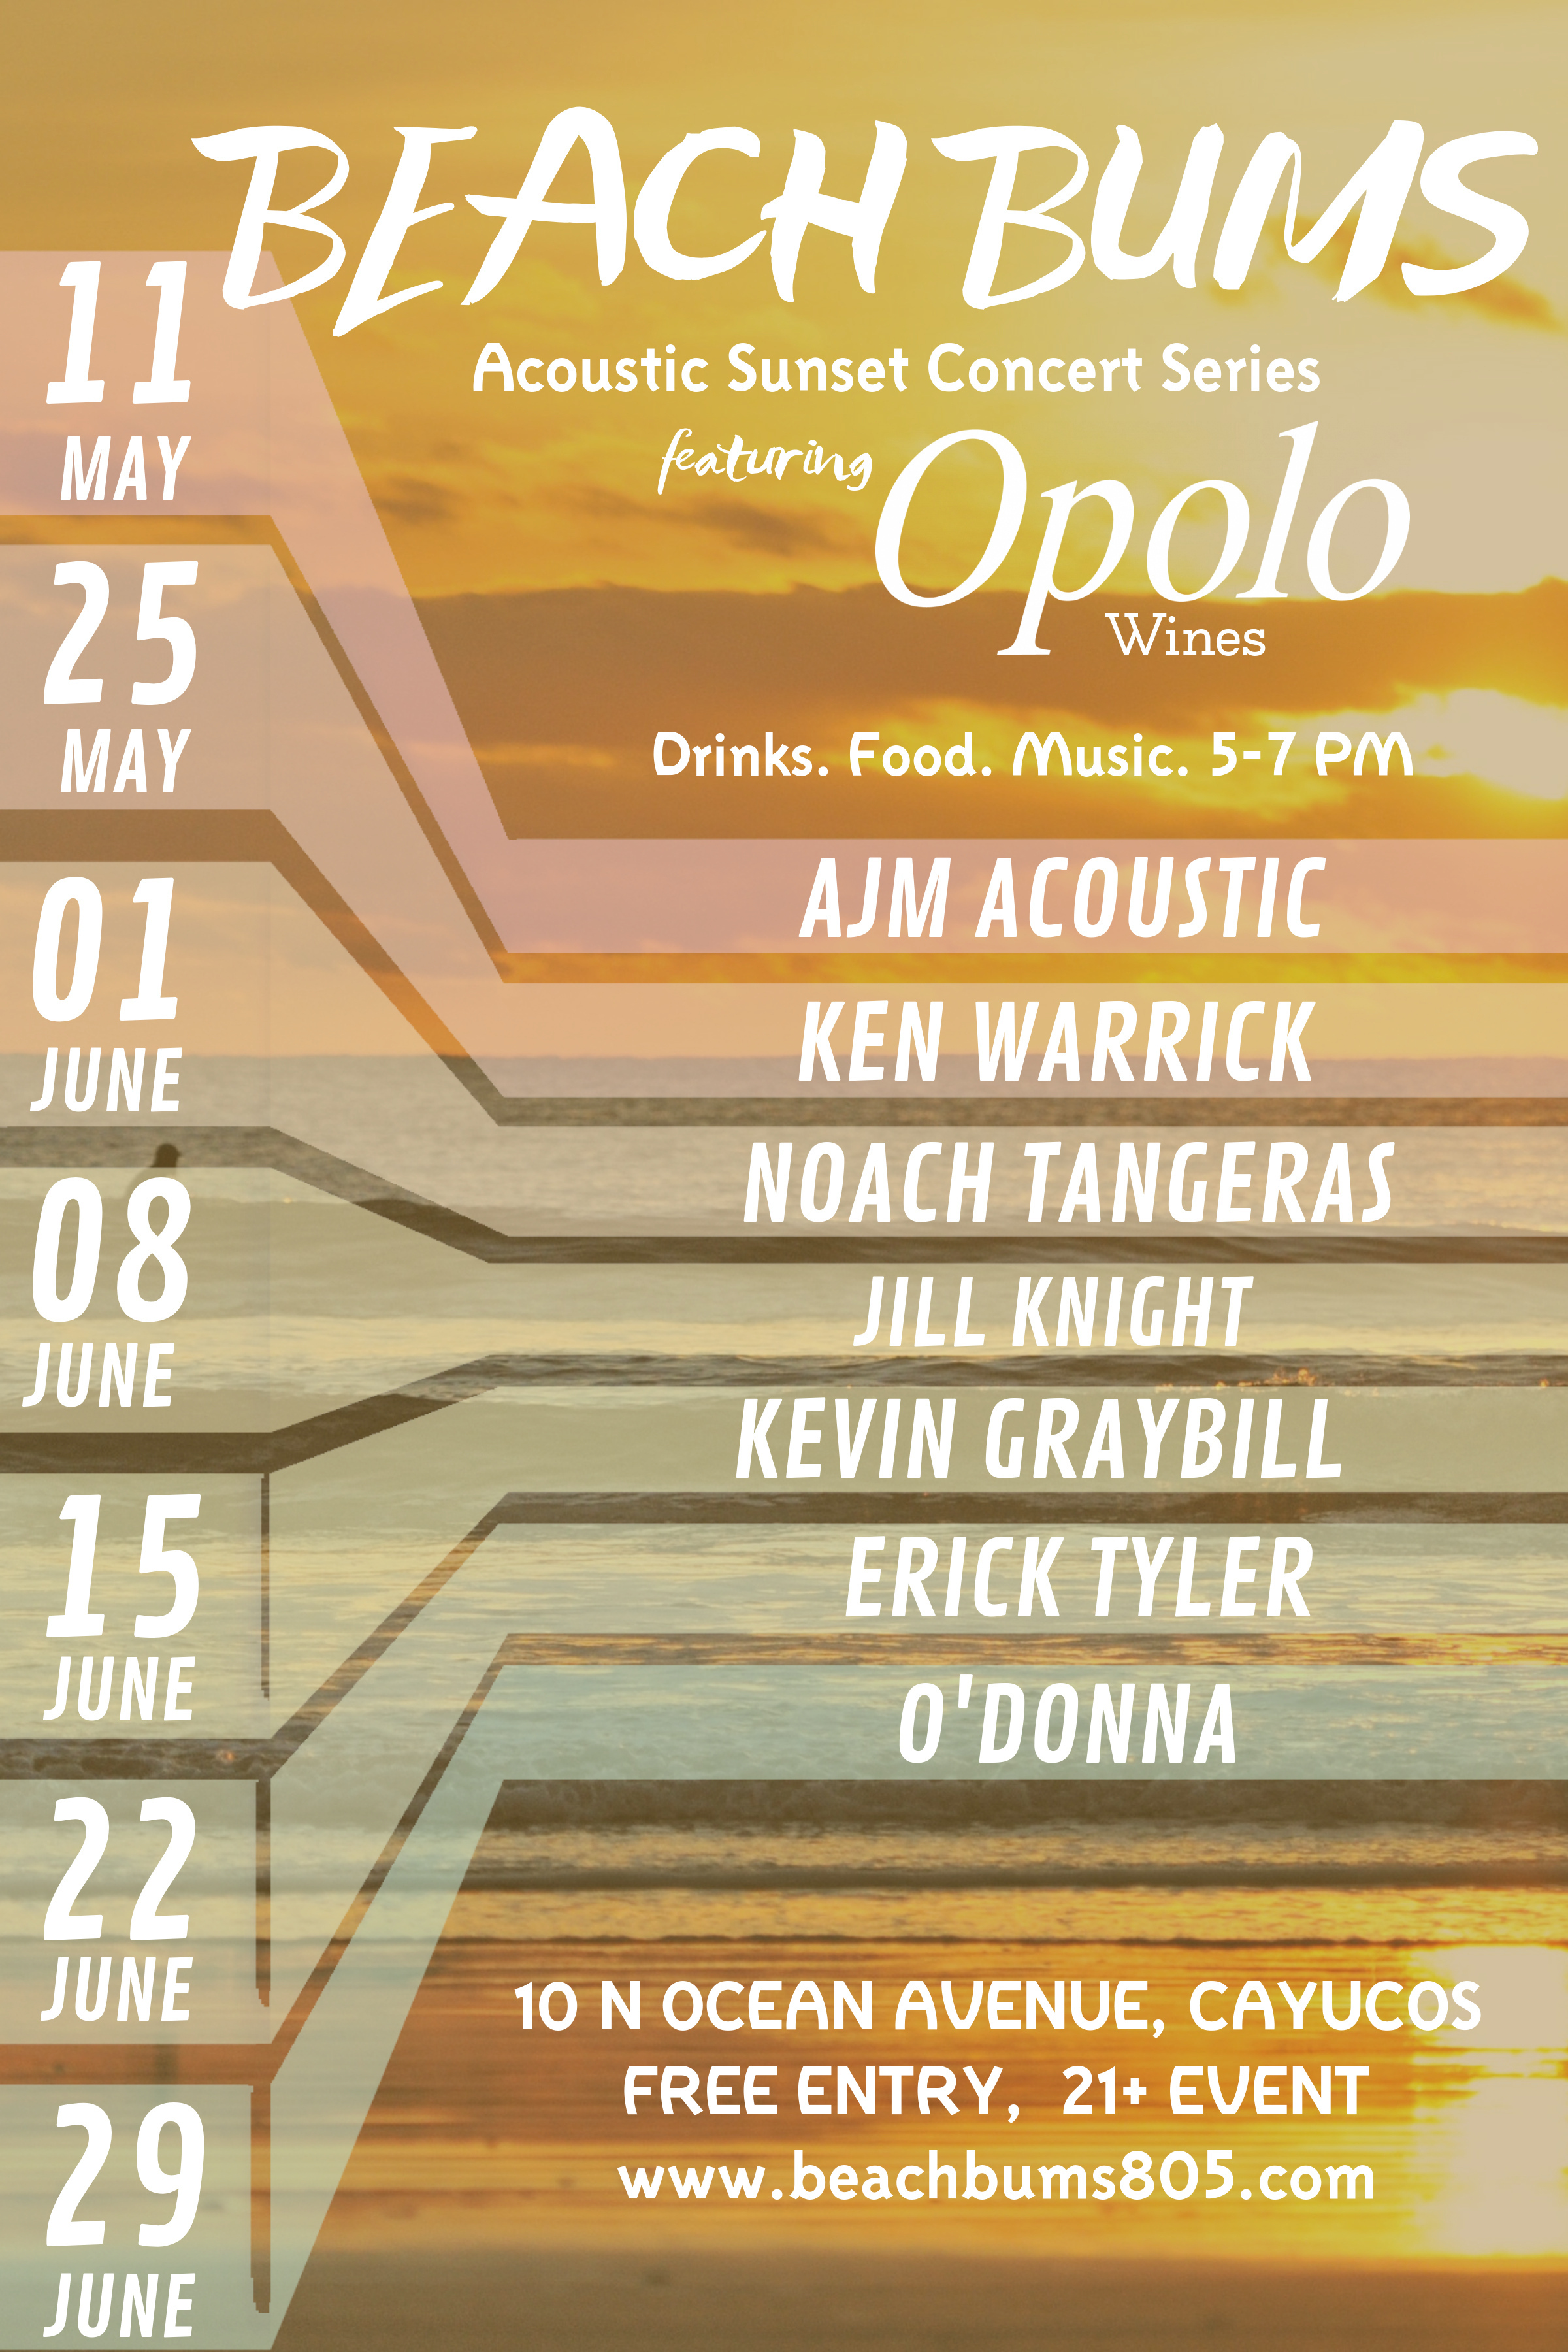 Beach Bums Acoustic Sunset Concert Series feat Opolo